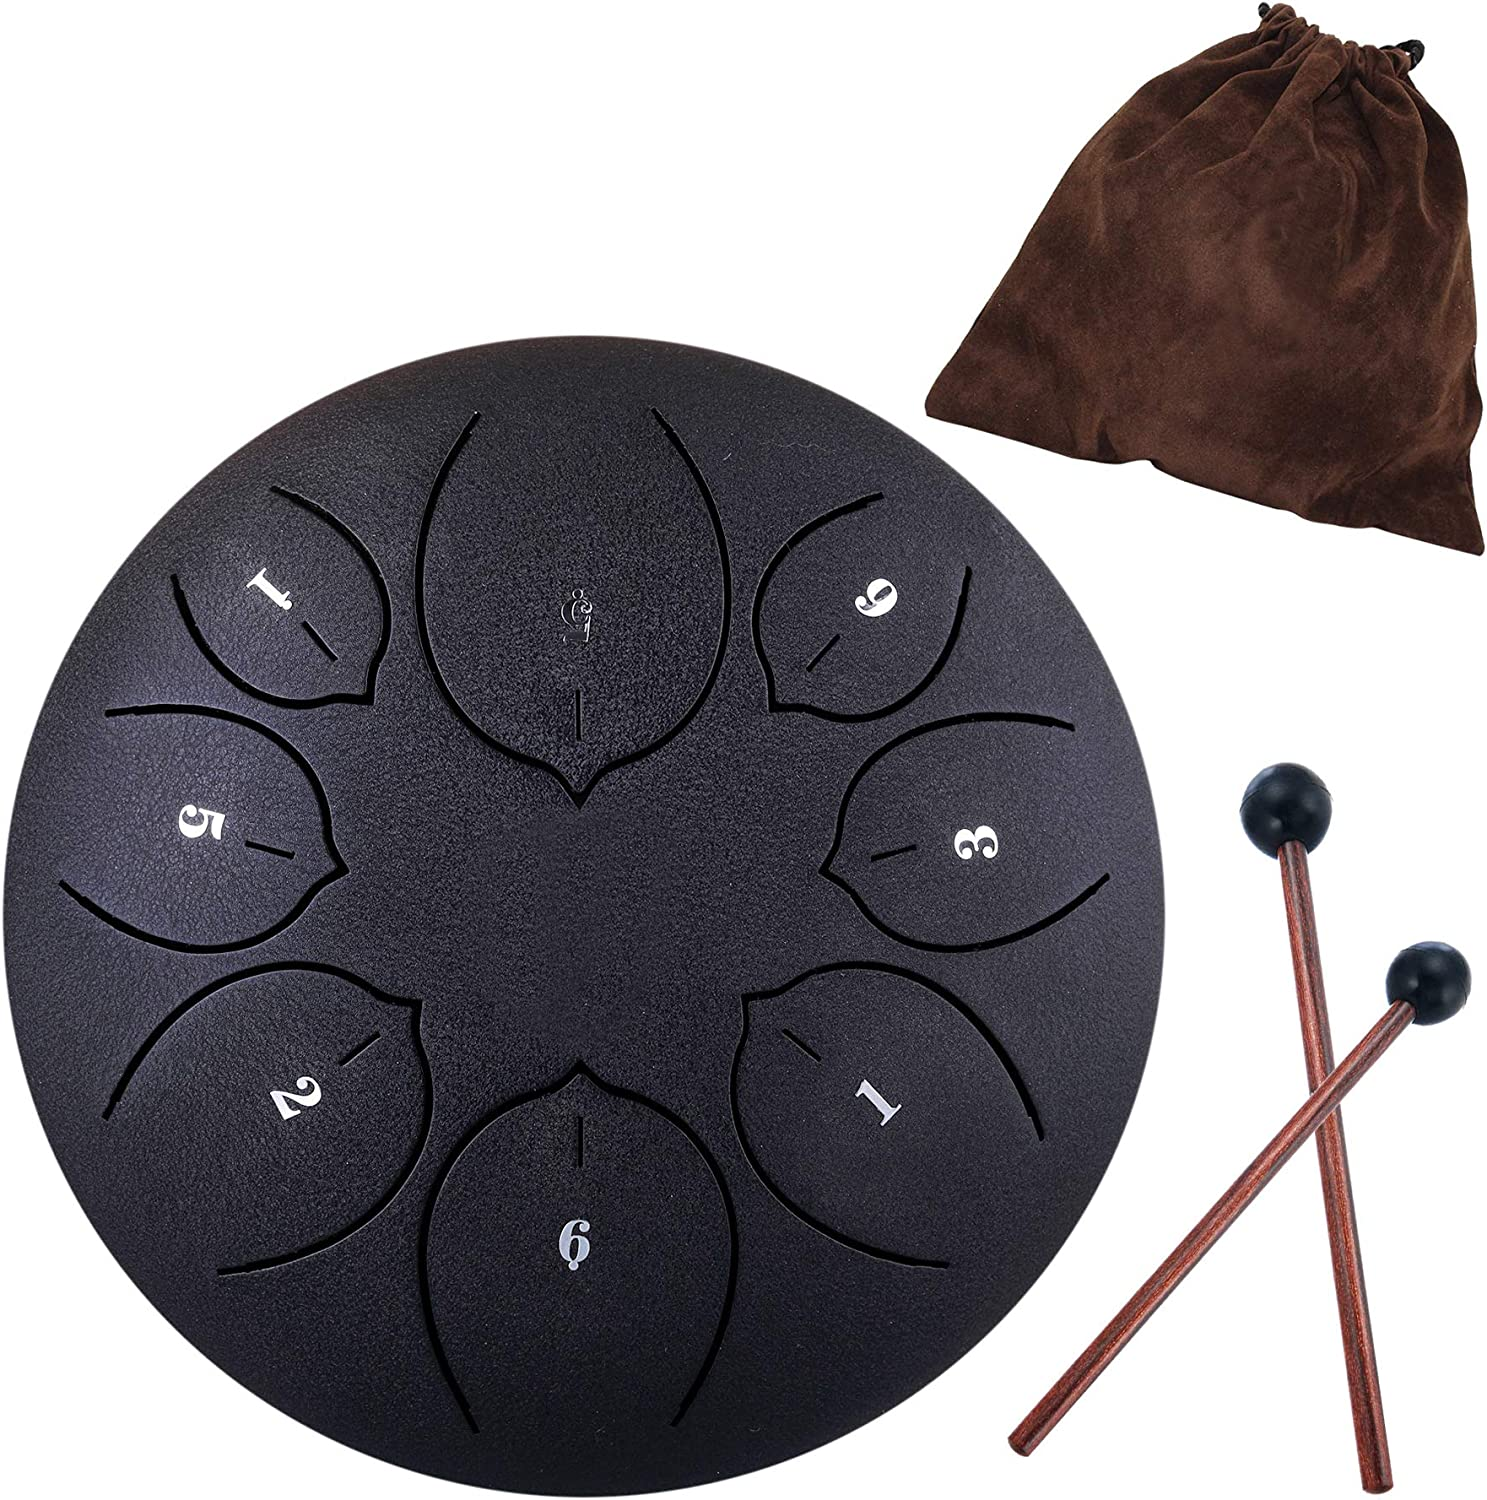 Lotus Handpan Tongue Drum 11 Notes 10 Inches Chakra Tank Drum Steel Percussion Hang Drum Instrument with Padded Travel Bag and Mallets Green